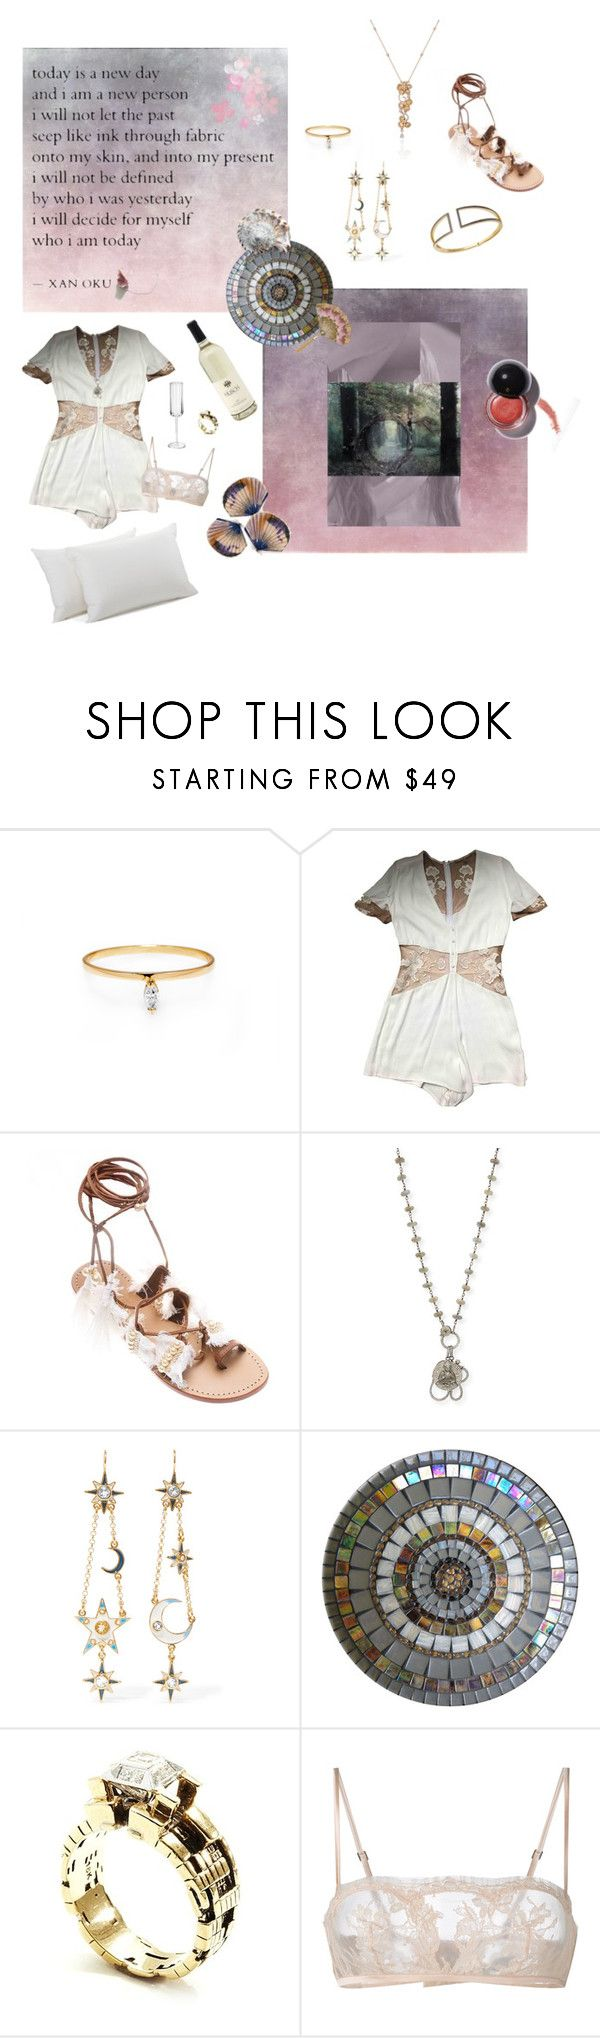 """Honeymoon"" by philomenesworld ❤ liked on Polyvore featuring Sheryl Lowe, Diego Percossi Papi, John Brevard, La Perla, love, tumblr, ootd and Honeymoon"